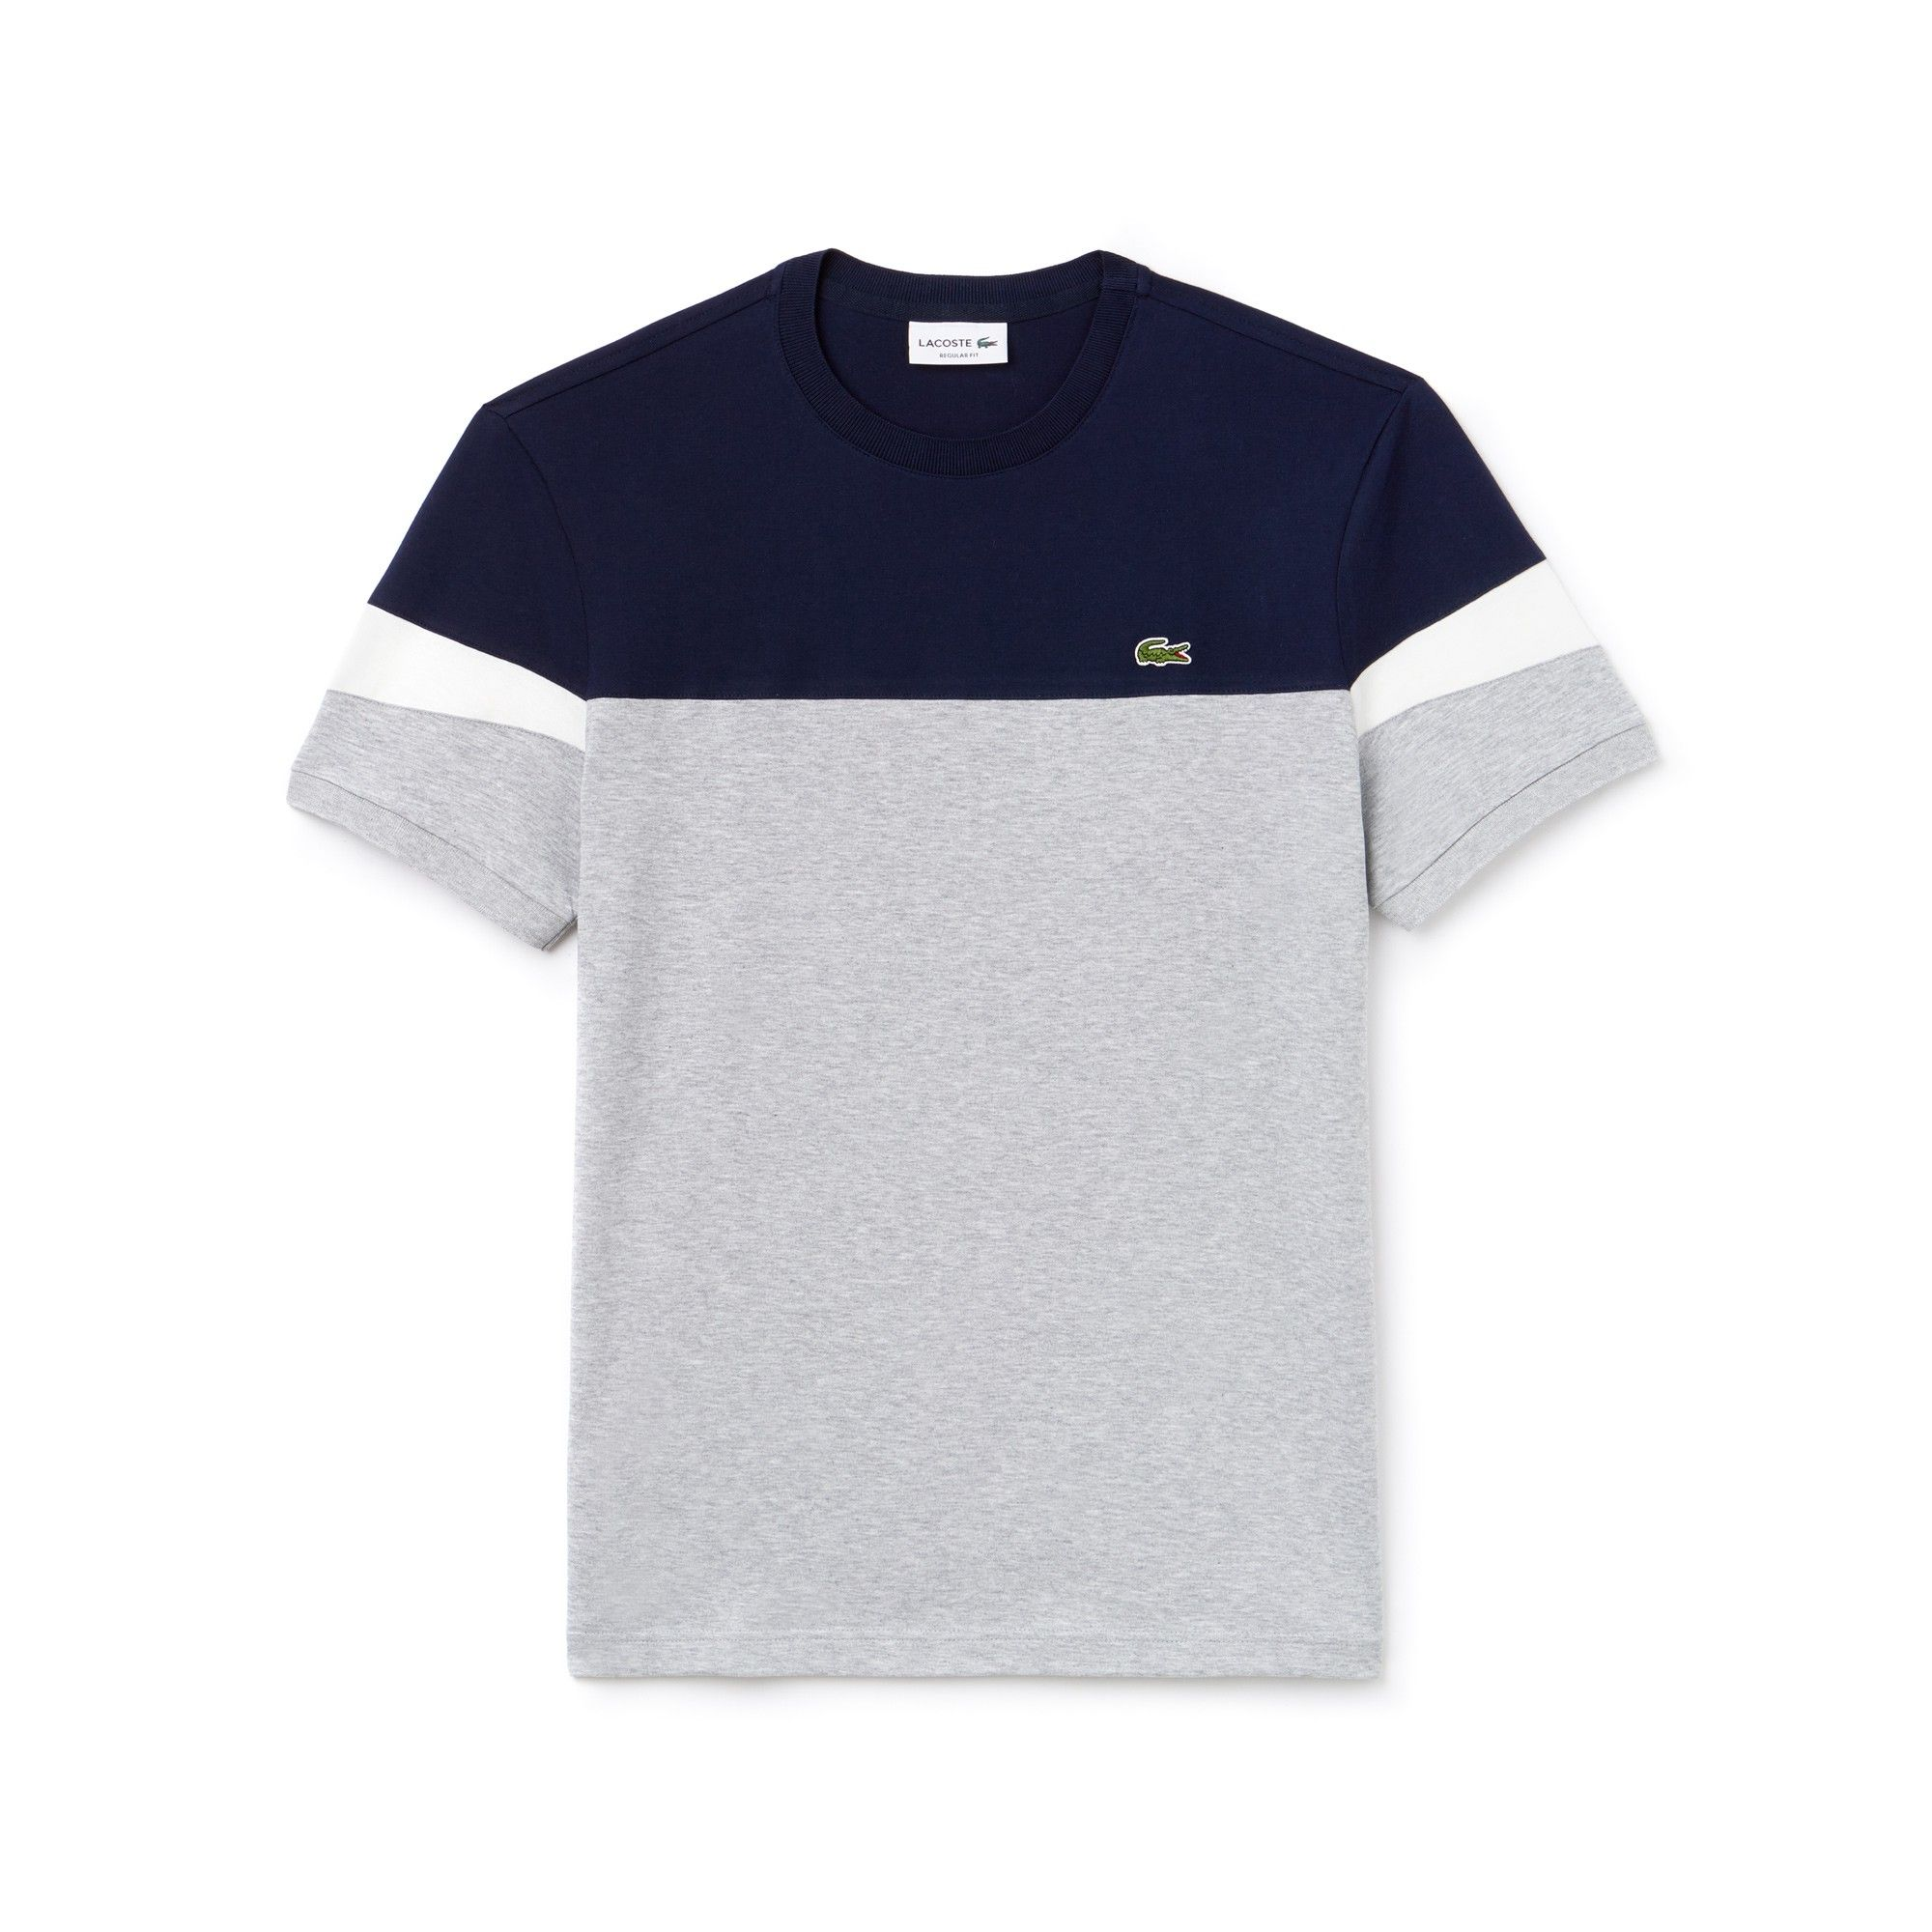 bdf37406 Lacoste Men's Crew Neck Colorblock Soft Jersey T-Shirt - Navy  Blue/Lighthouse Red- 3Xl 8 Green